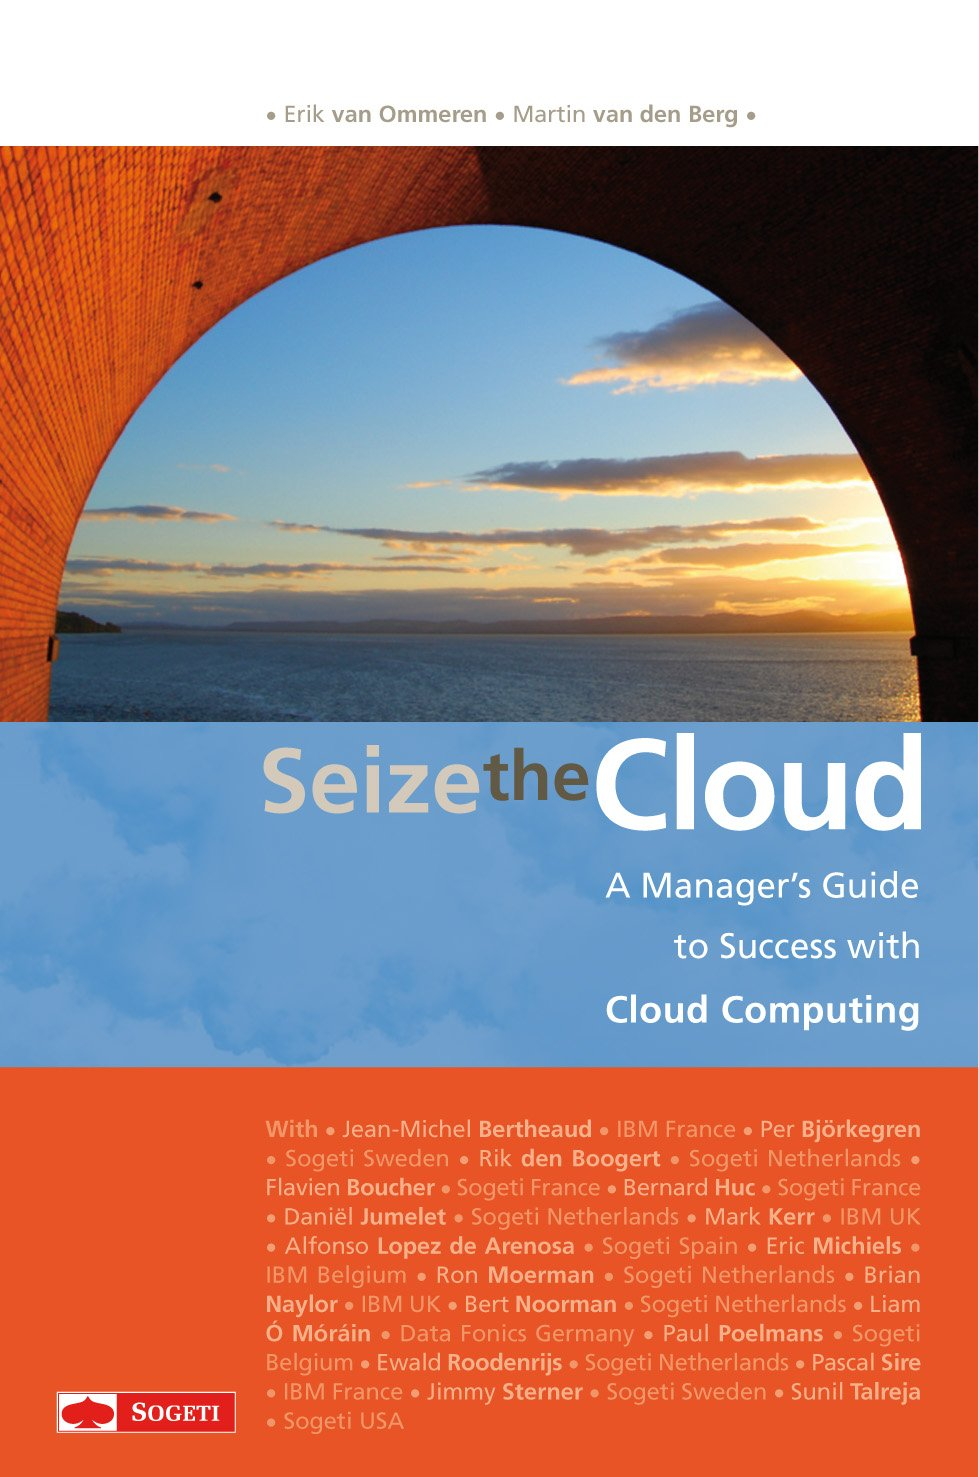 Seize the Cloud: A Manager's Guide to Success with Cloud Computing: Erik  van Ommeren, Martin van den Berg: 9789075414325: Amazon.com: Books